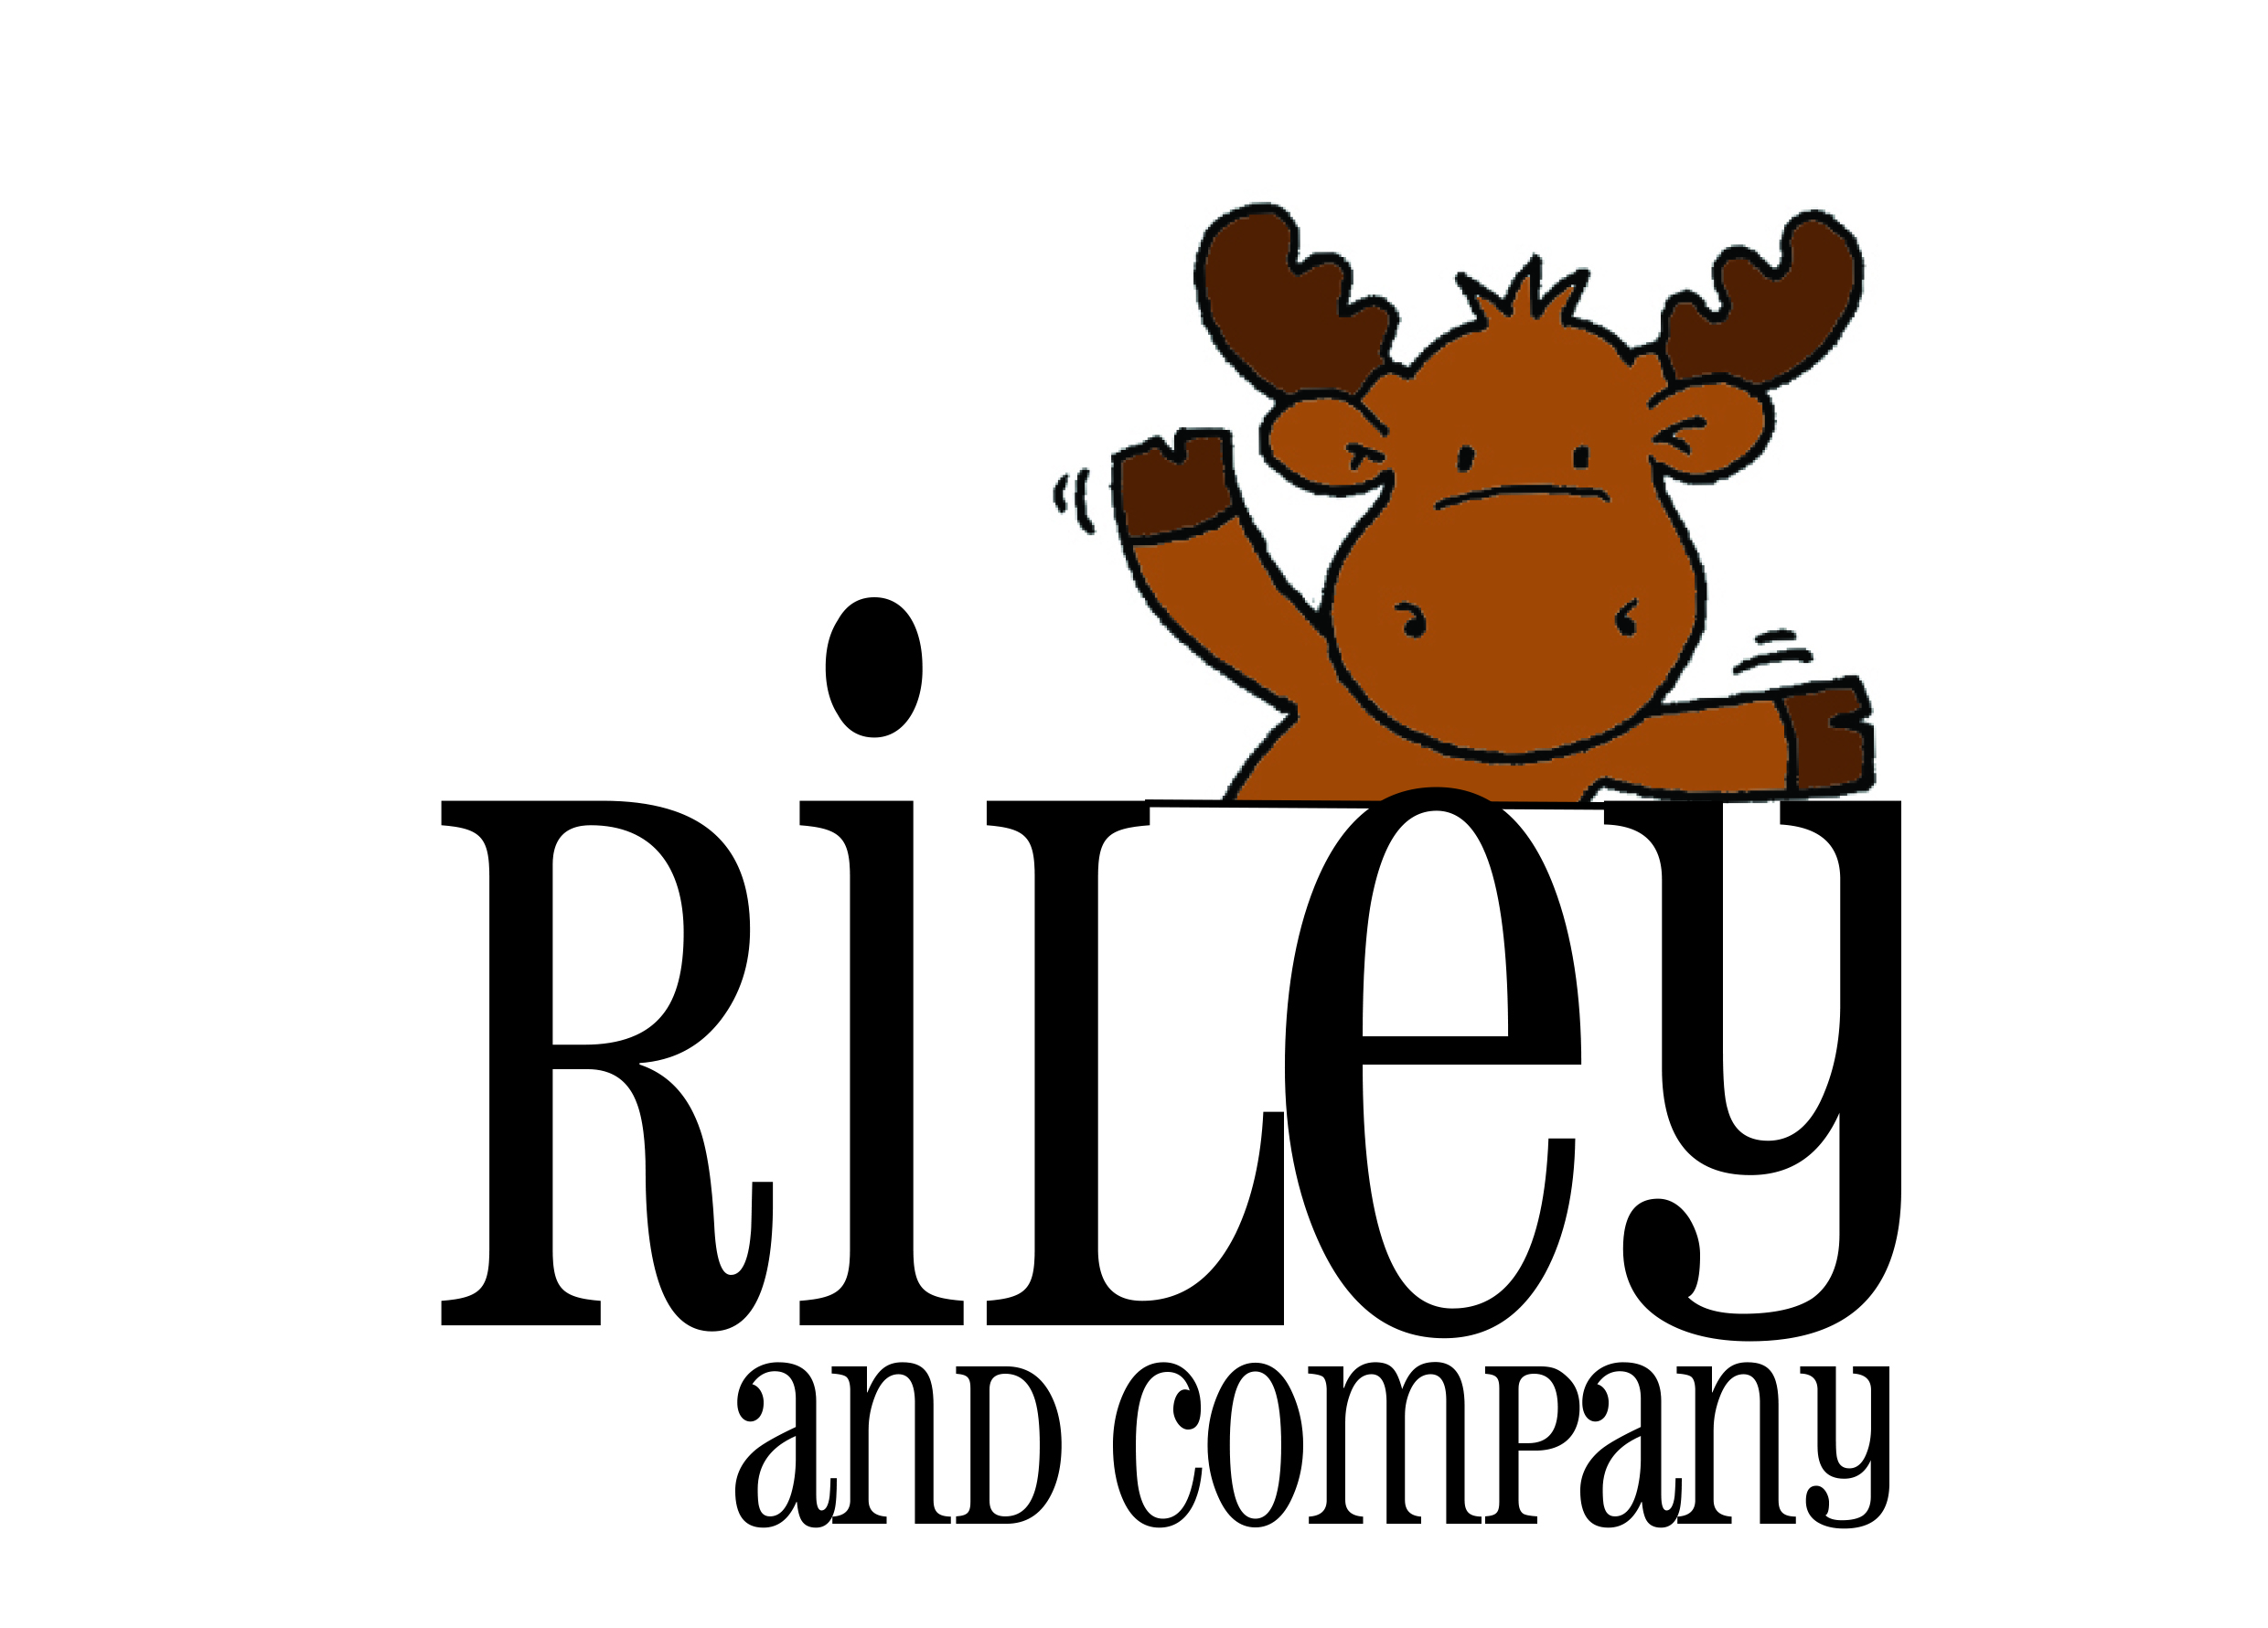 Riley & Co